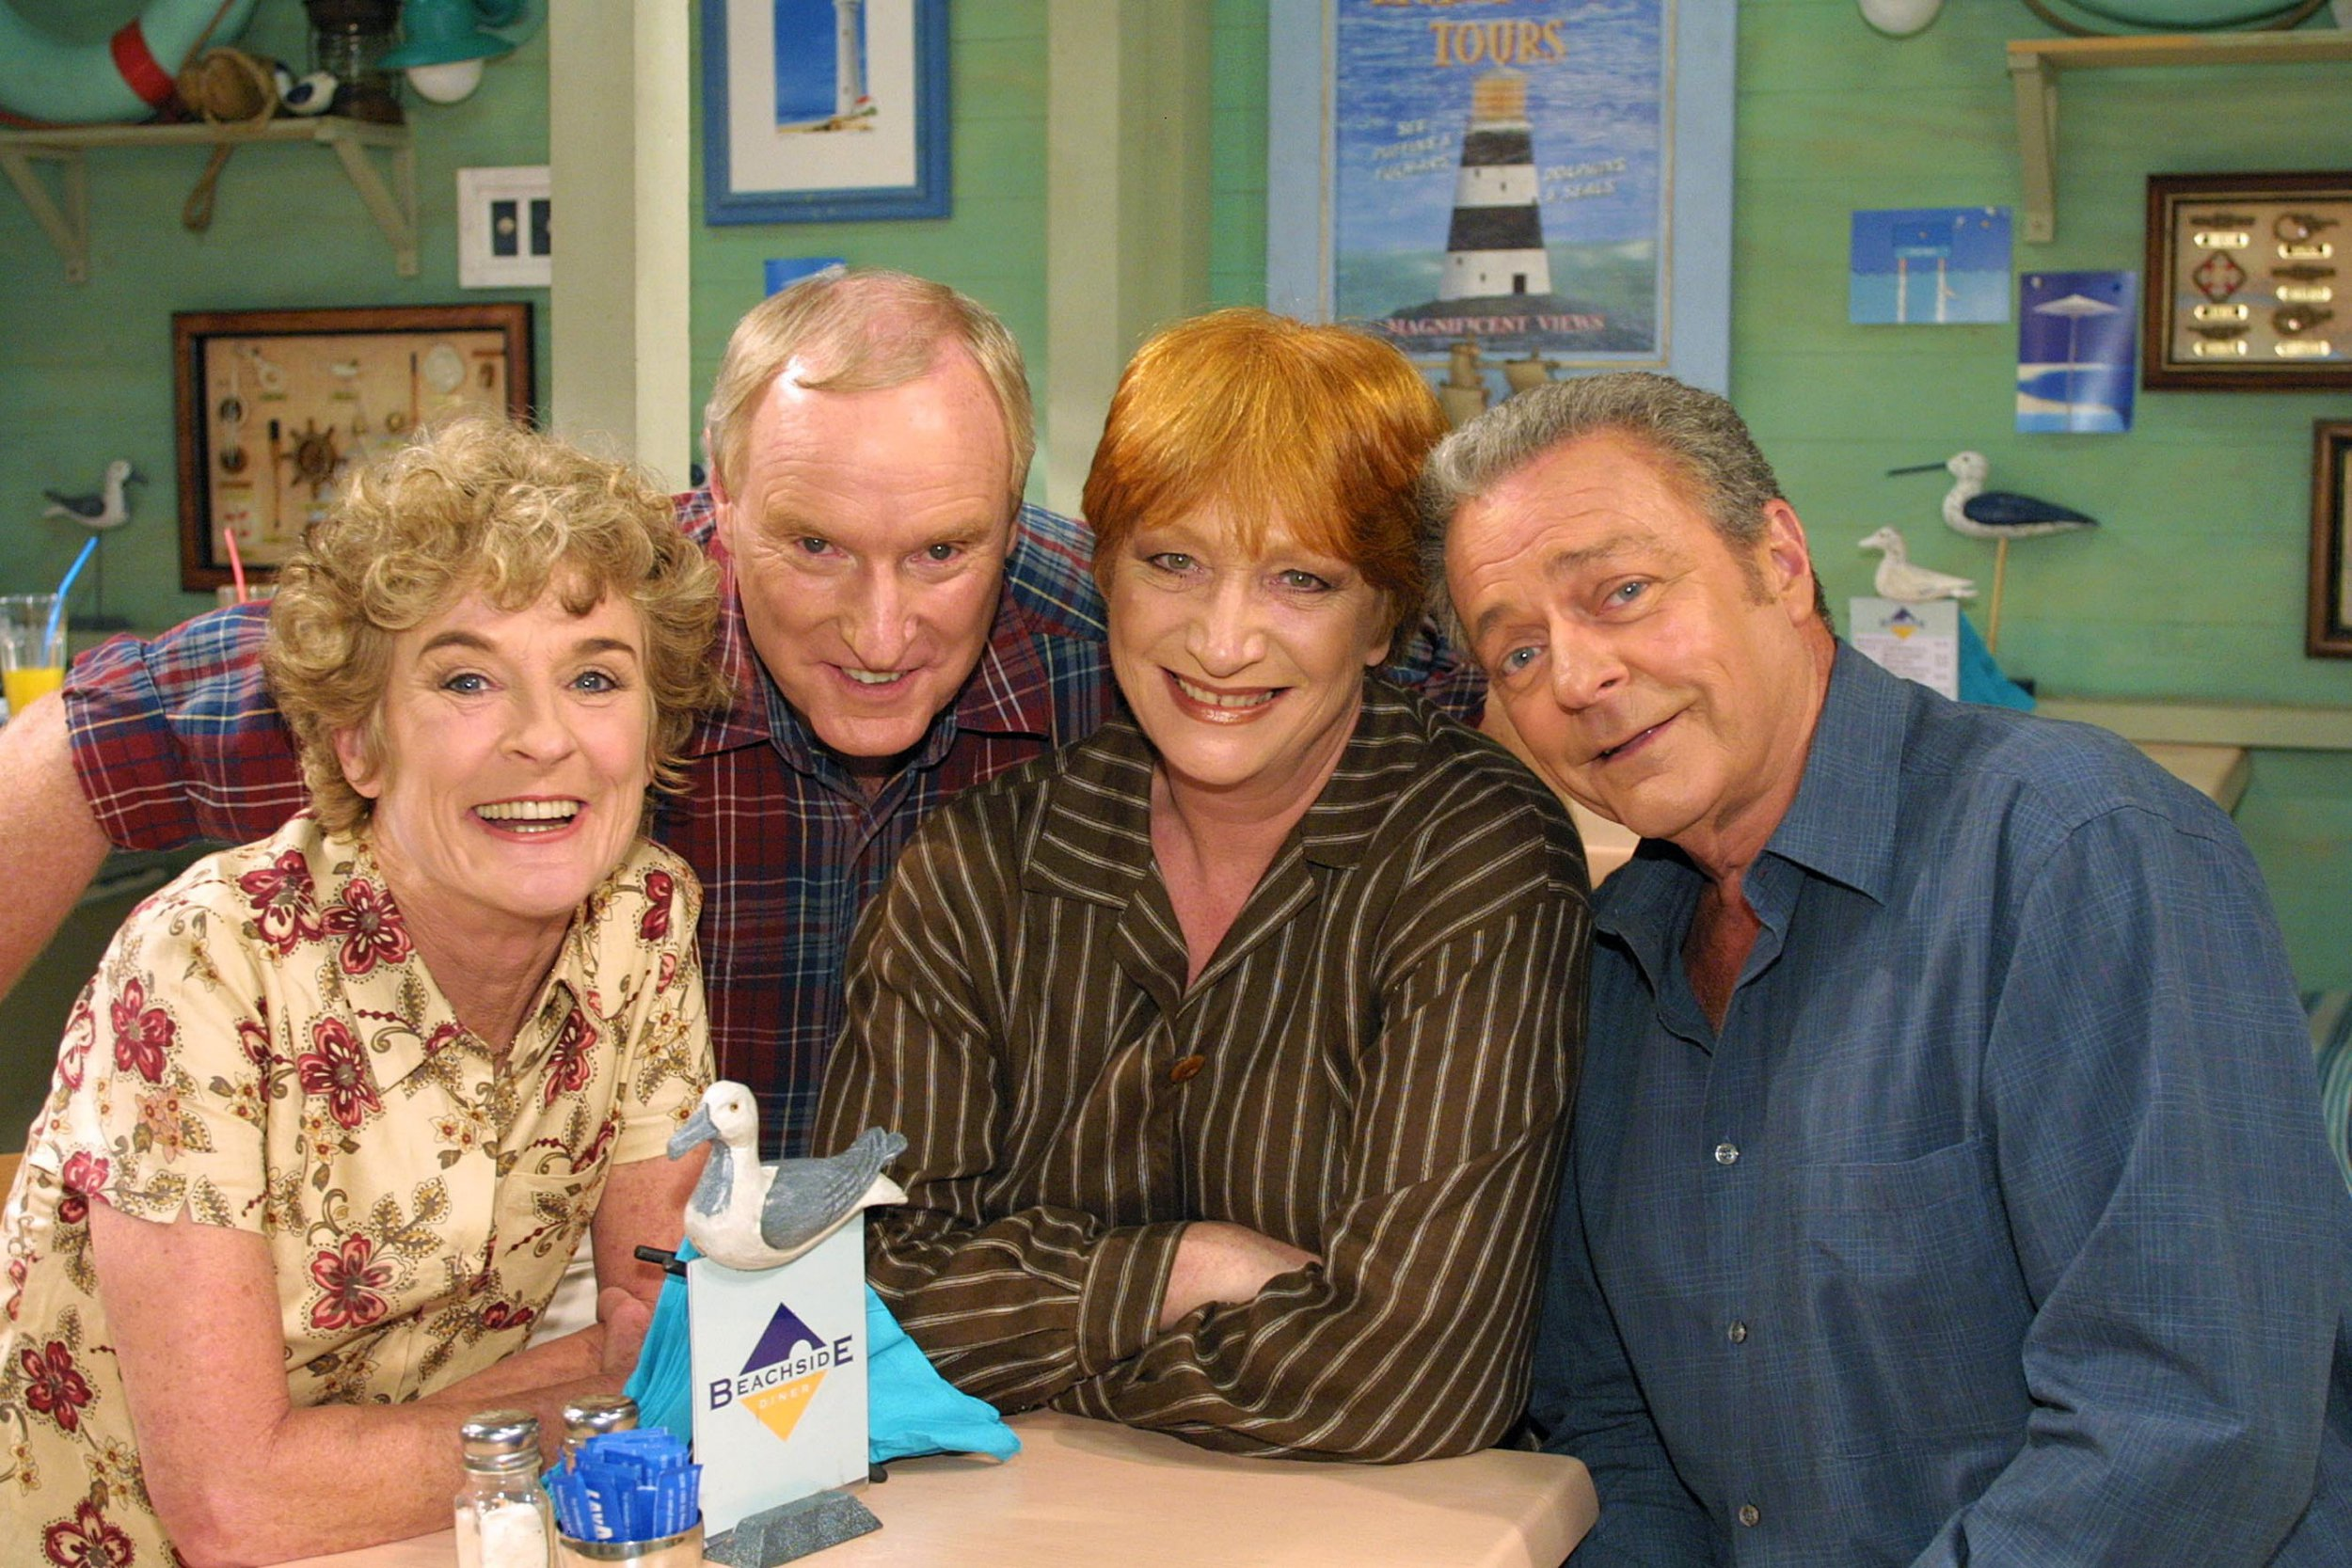 Home And Away stars pay tribute to Cornelia Frances, who died of bladder cancer aged 77